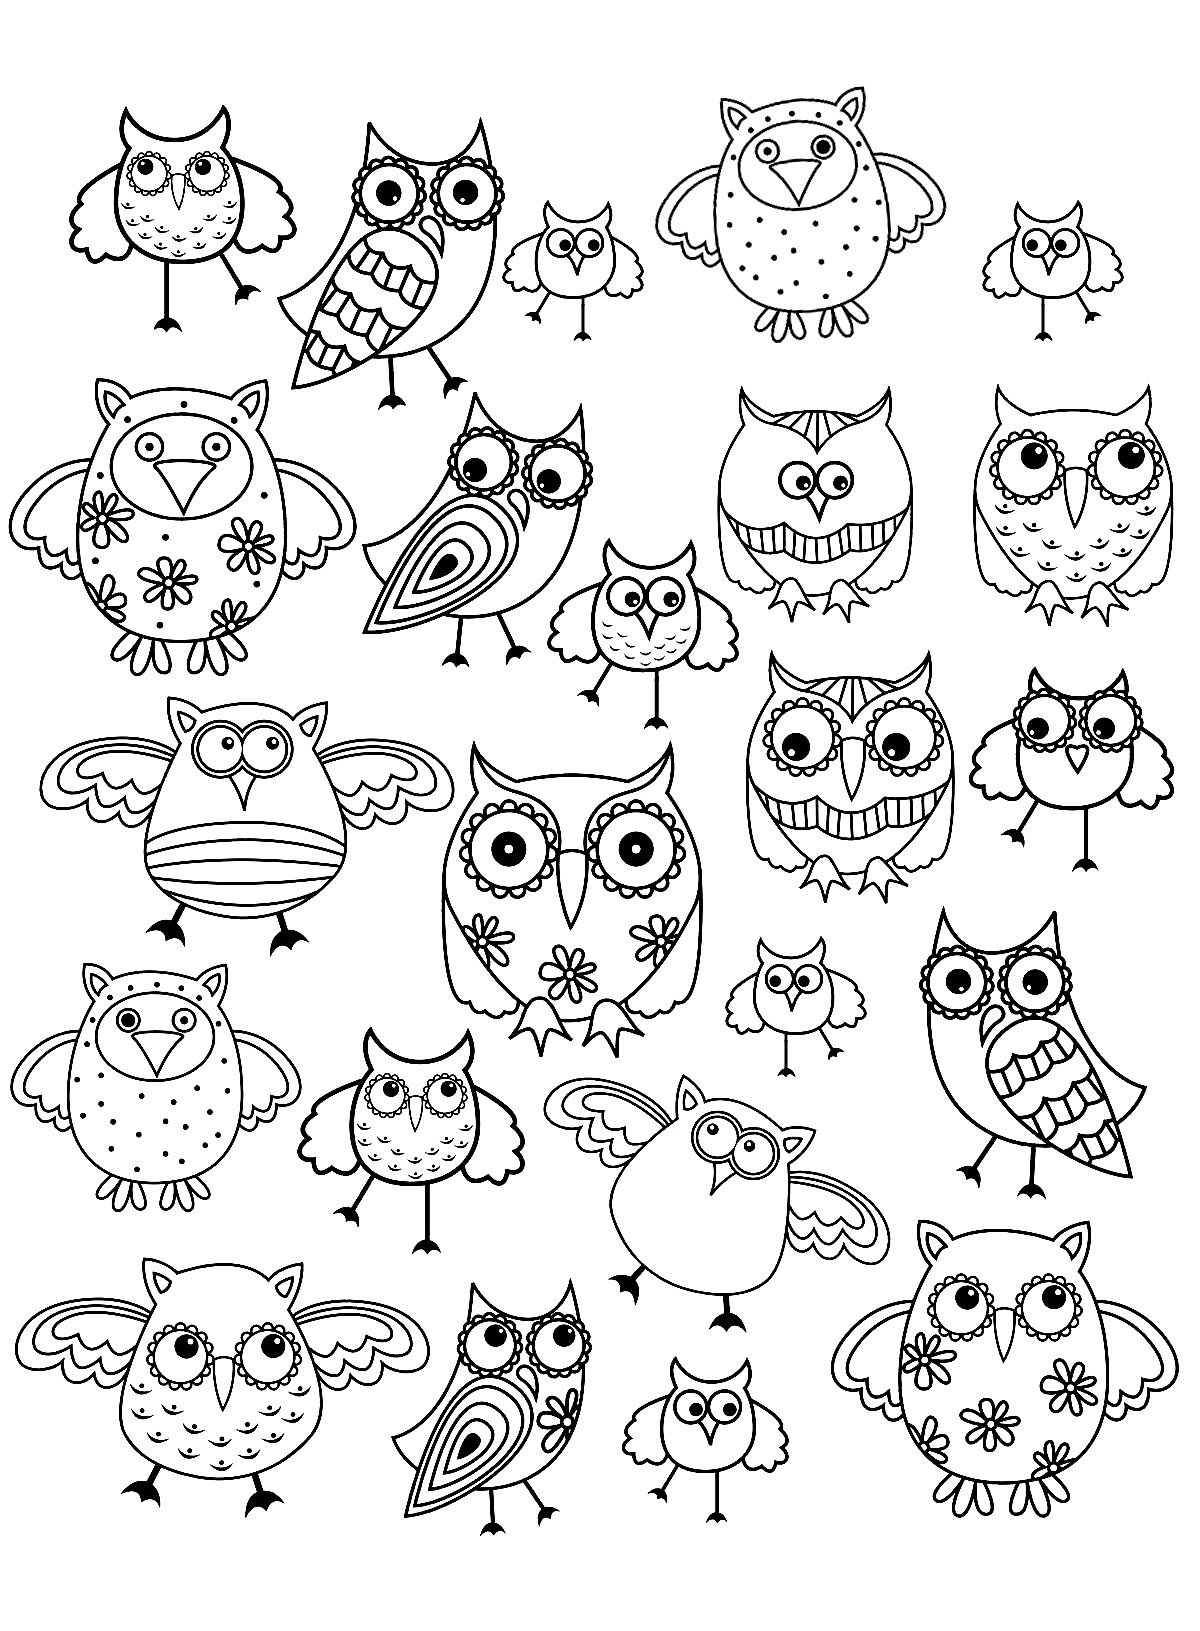 owls composing a simple doodle drawing to print and colorfrom the